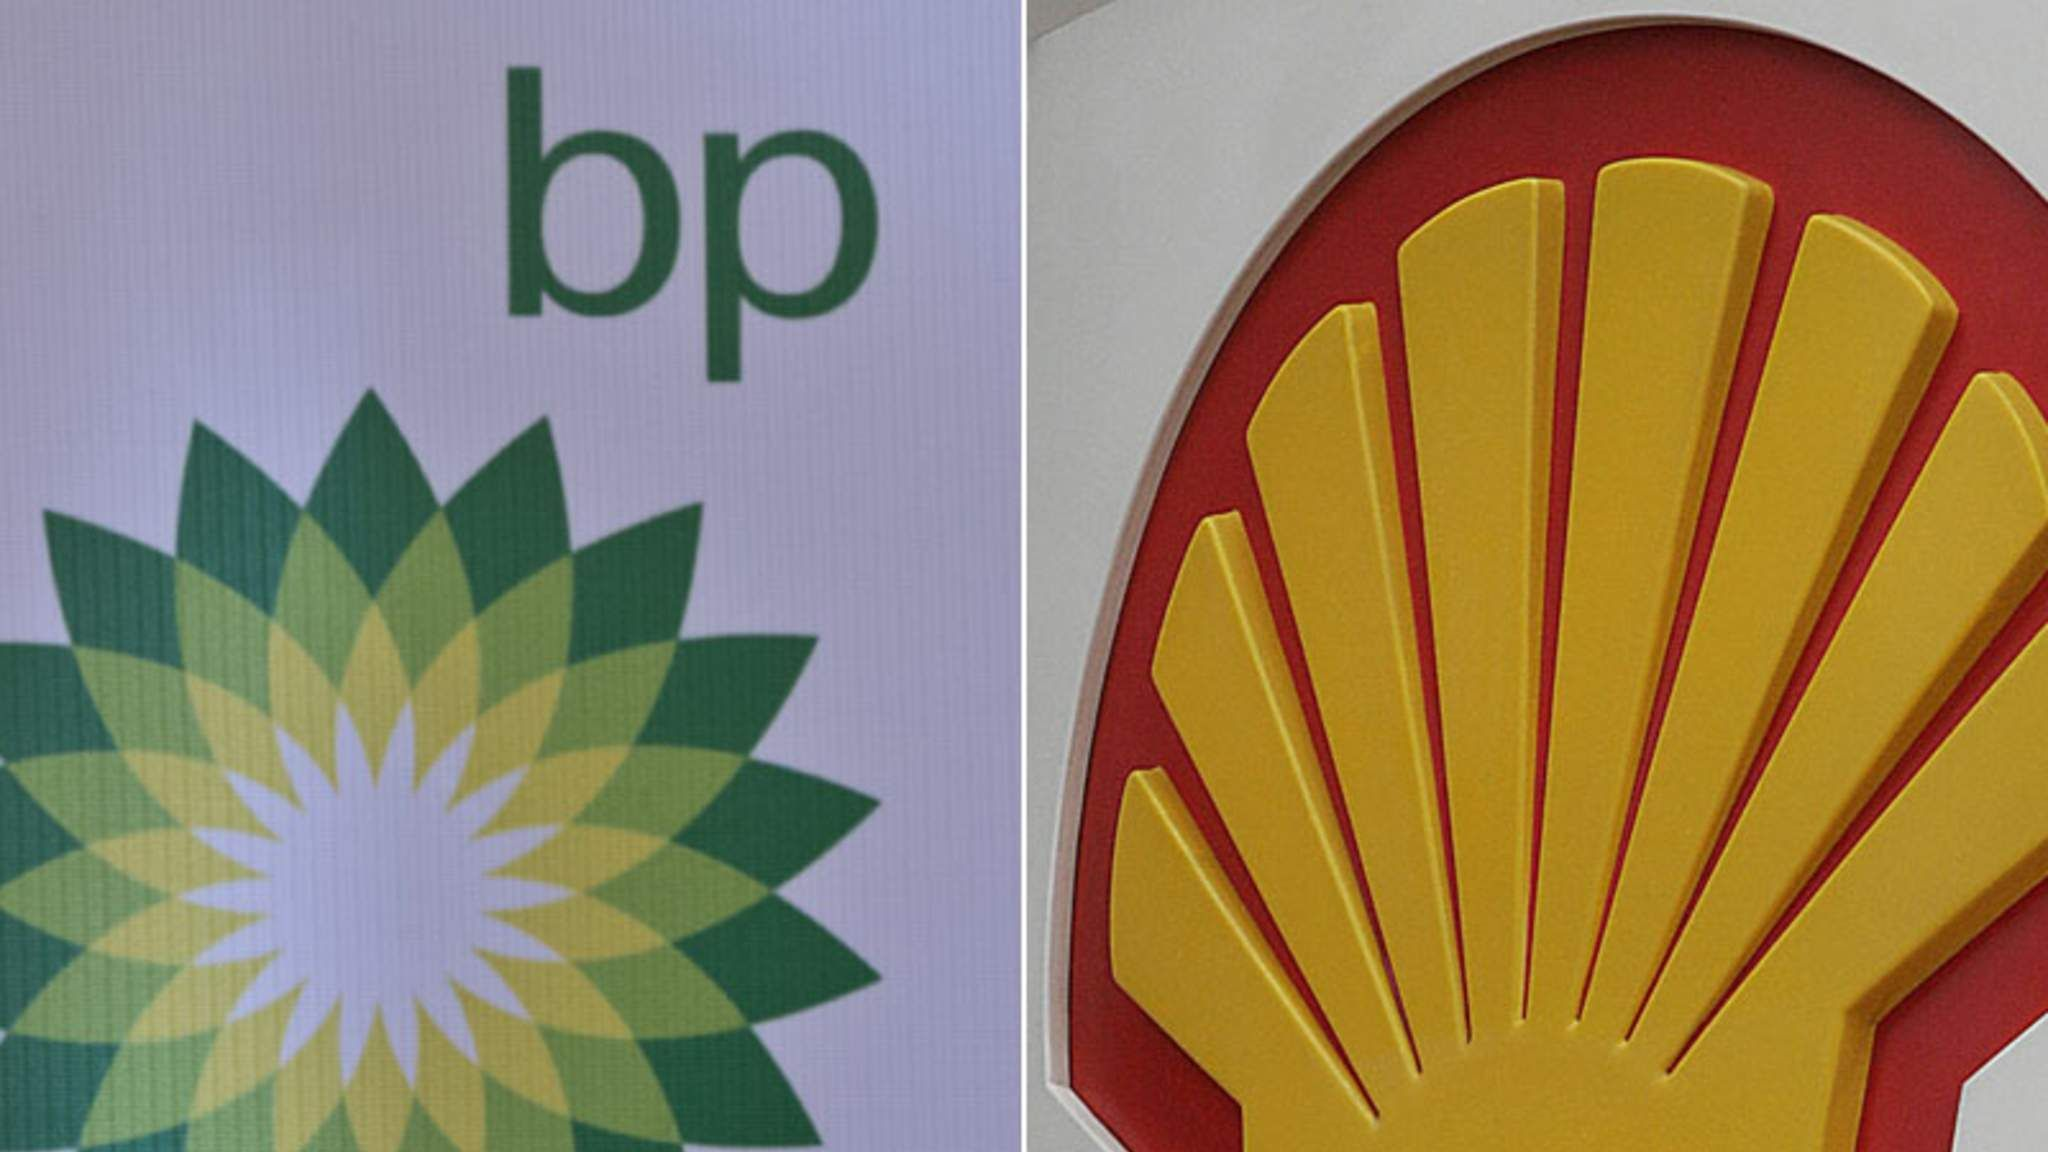 intermediarires for shell and bp Royal dutch shell plc 2017 interim dividend timetable nov 1, 2016 non-registered ads holders can contact their broker, financial intermediary.